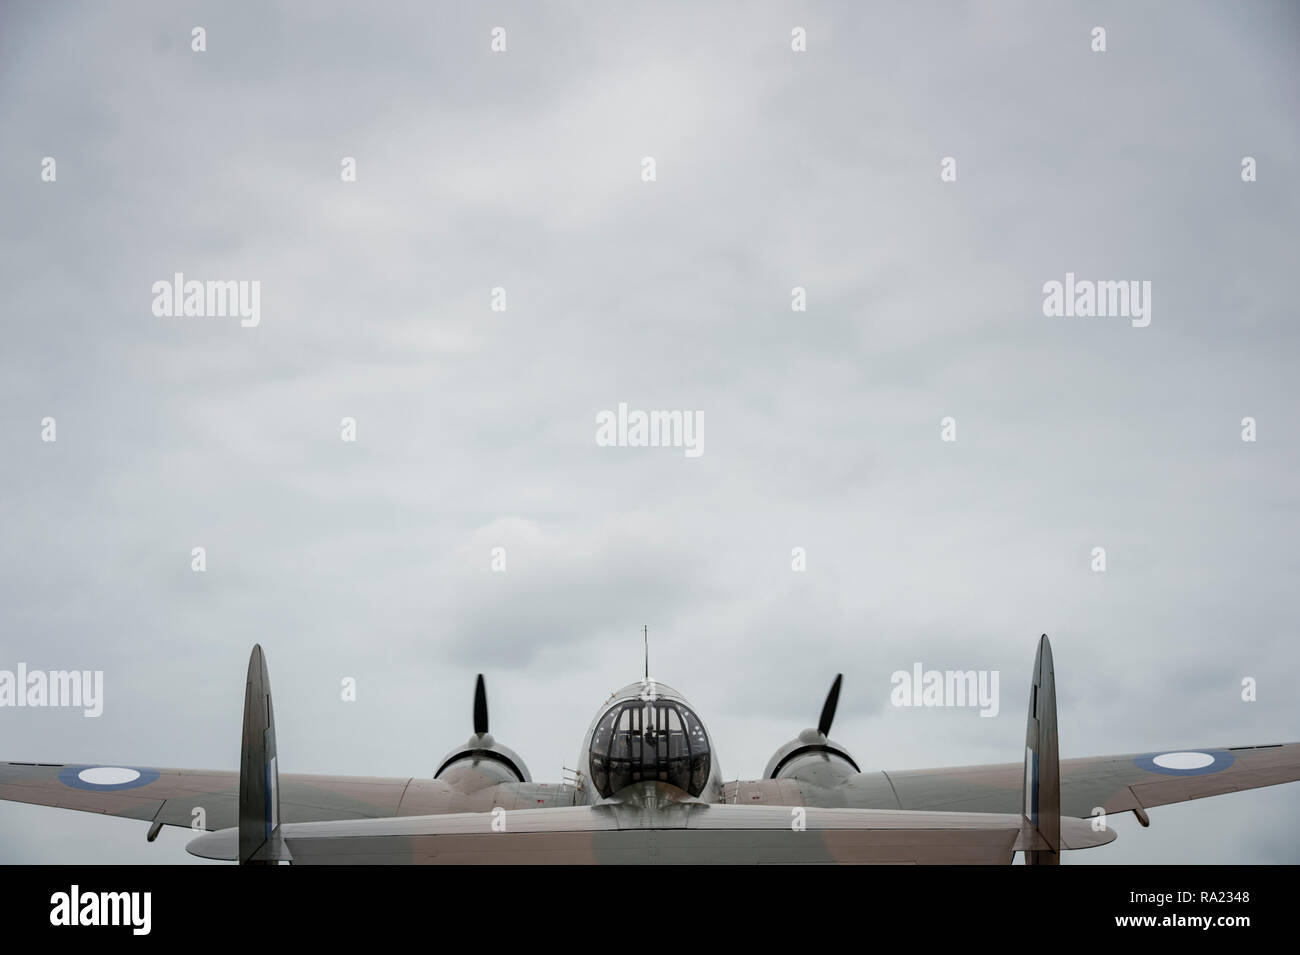 Wide rear view of WWII two engine bomber against a dark cloudy sky - Stock Image